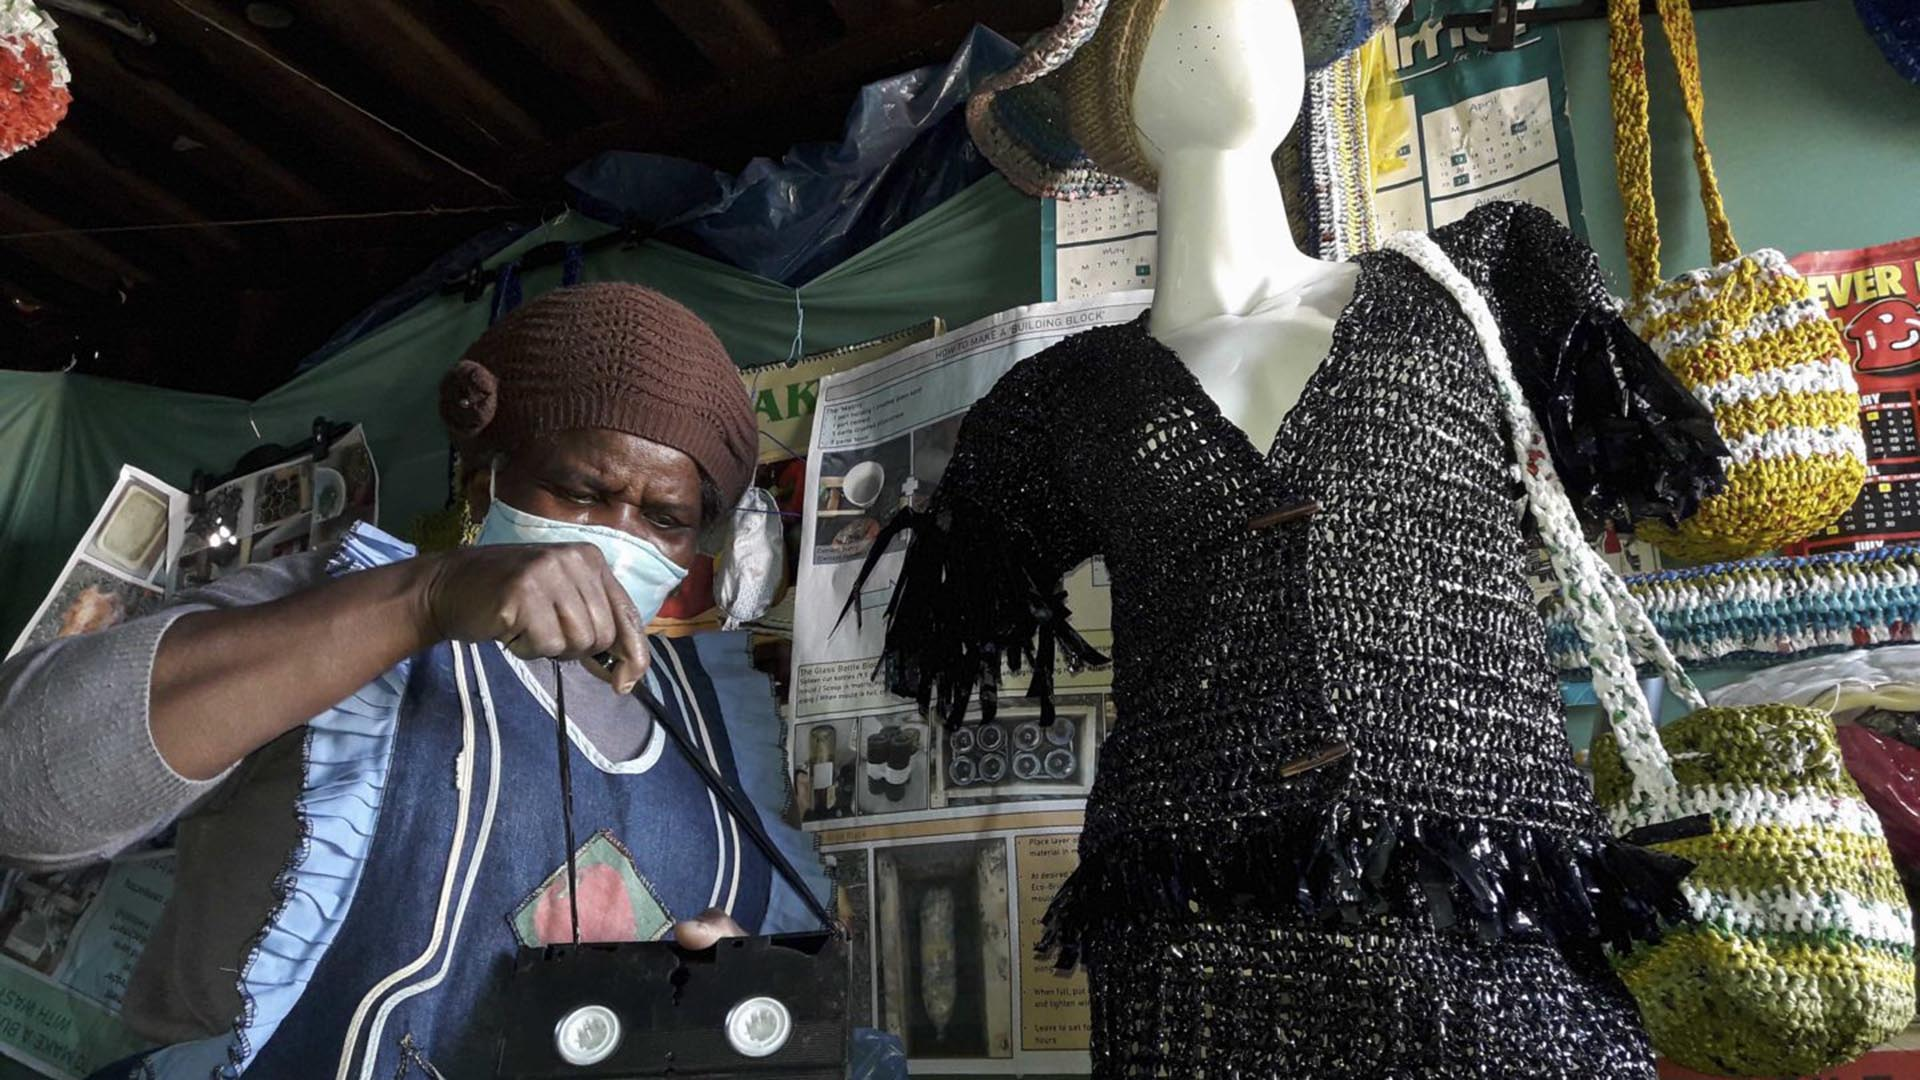 Recycling: Thenjiwe Jacobs, founder of the Noziqamo recycling project in Motherwell, Gqeberha, with an outfit she made using old VCR tapes. Photo: Photographs by Sibongile Portia Jonas